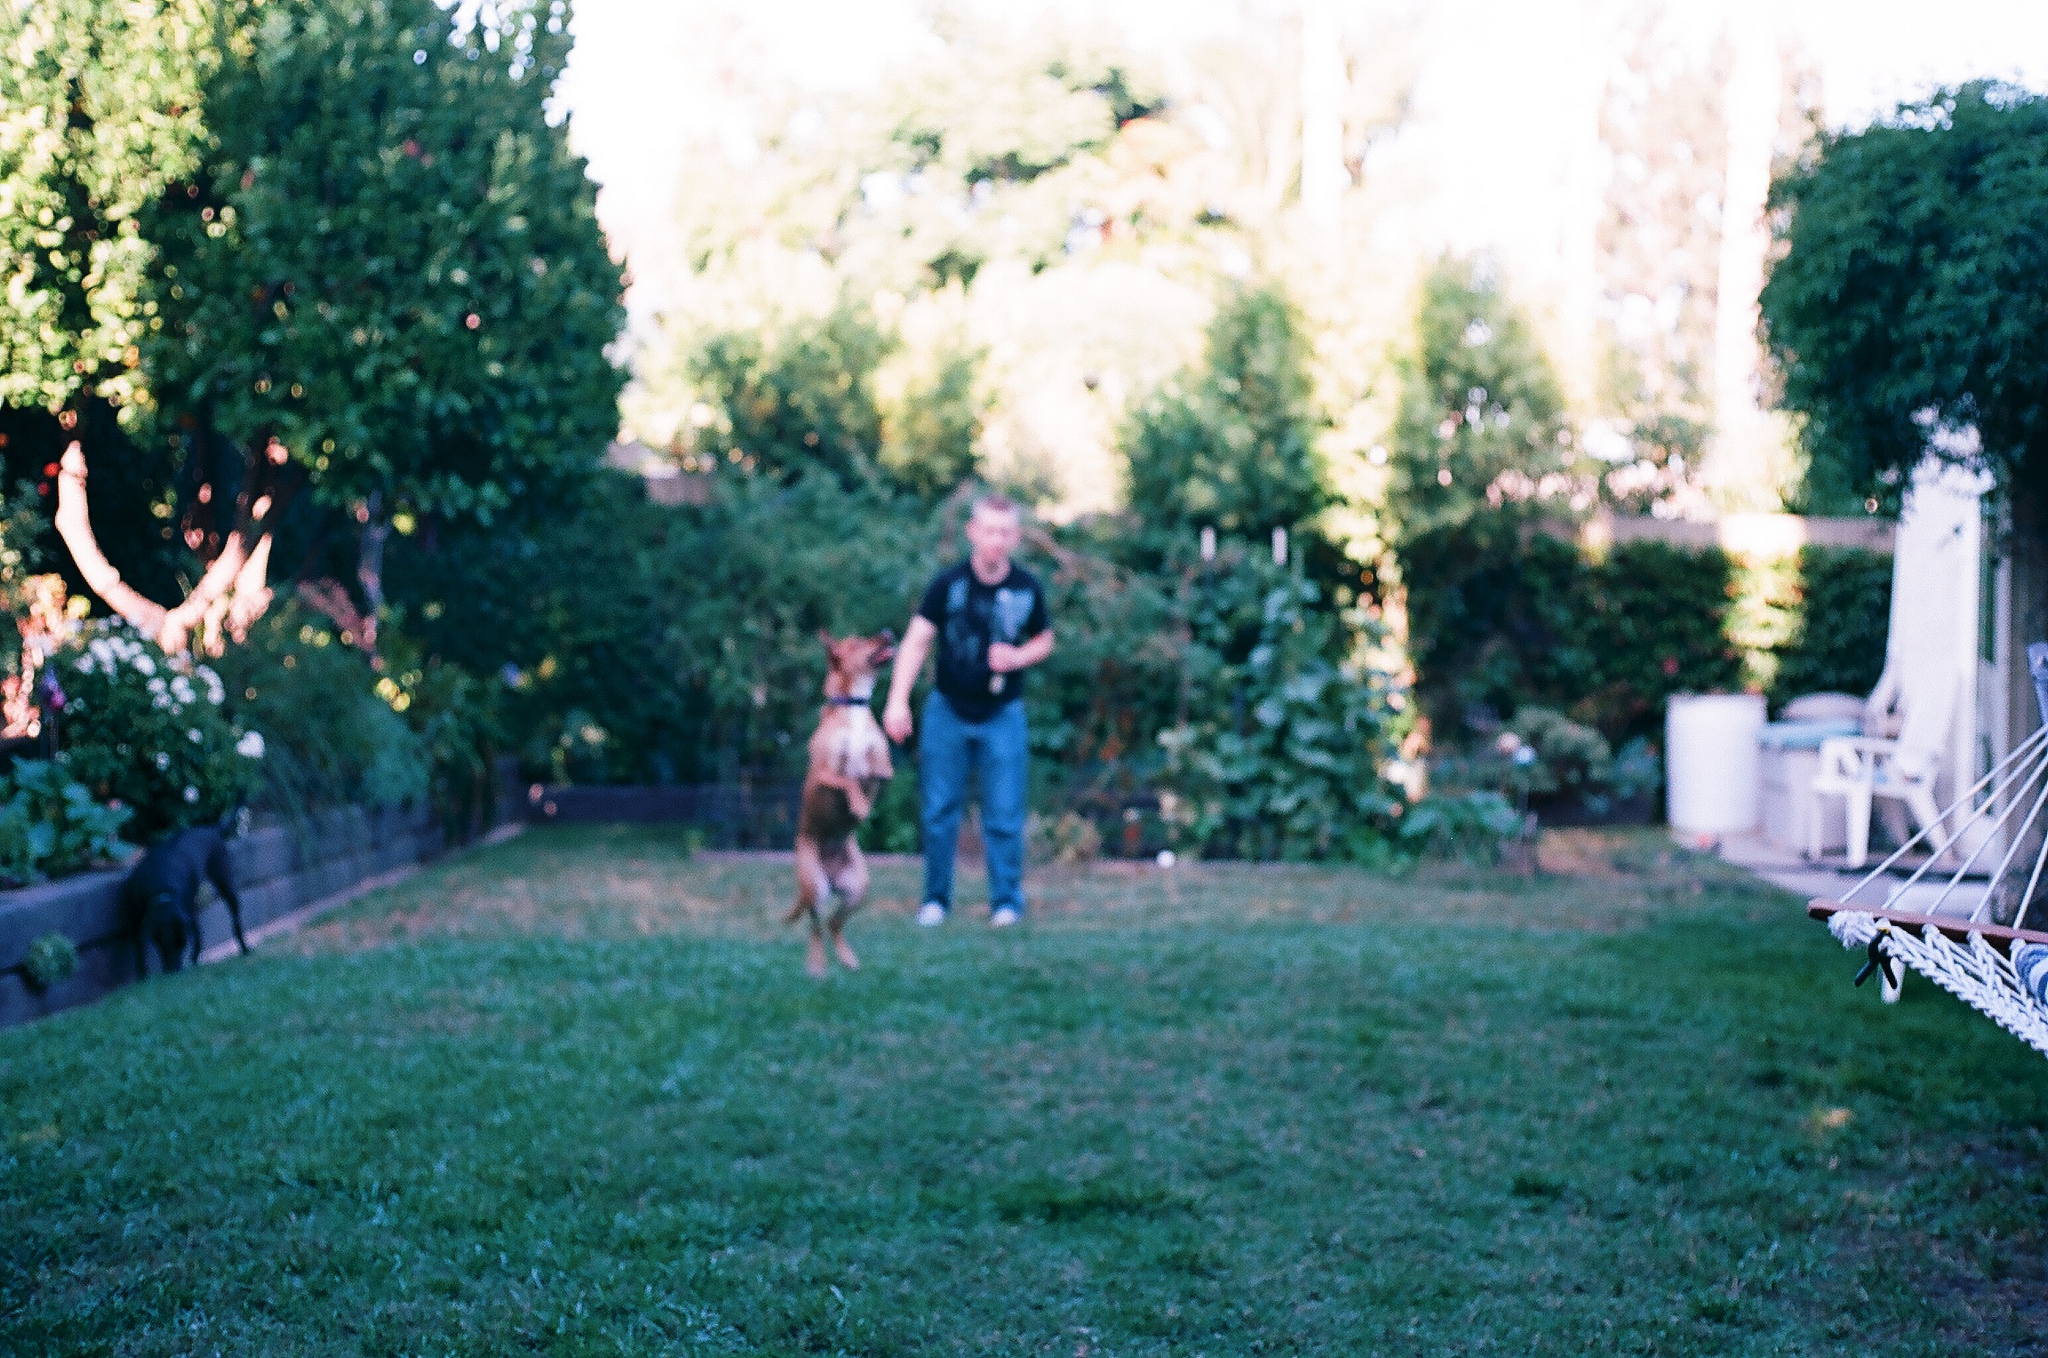 Summer Nights Kodak Ektar 100 Film - Out of Focus Fetch by Ellingsen Photography